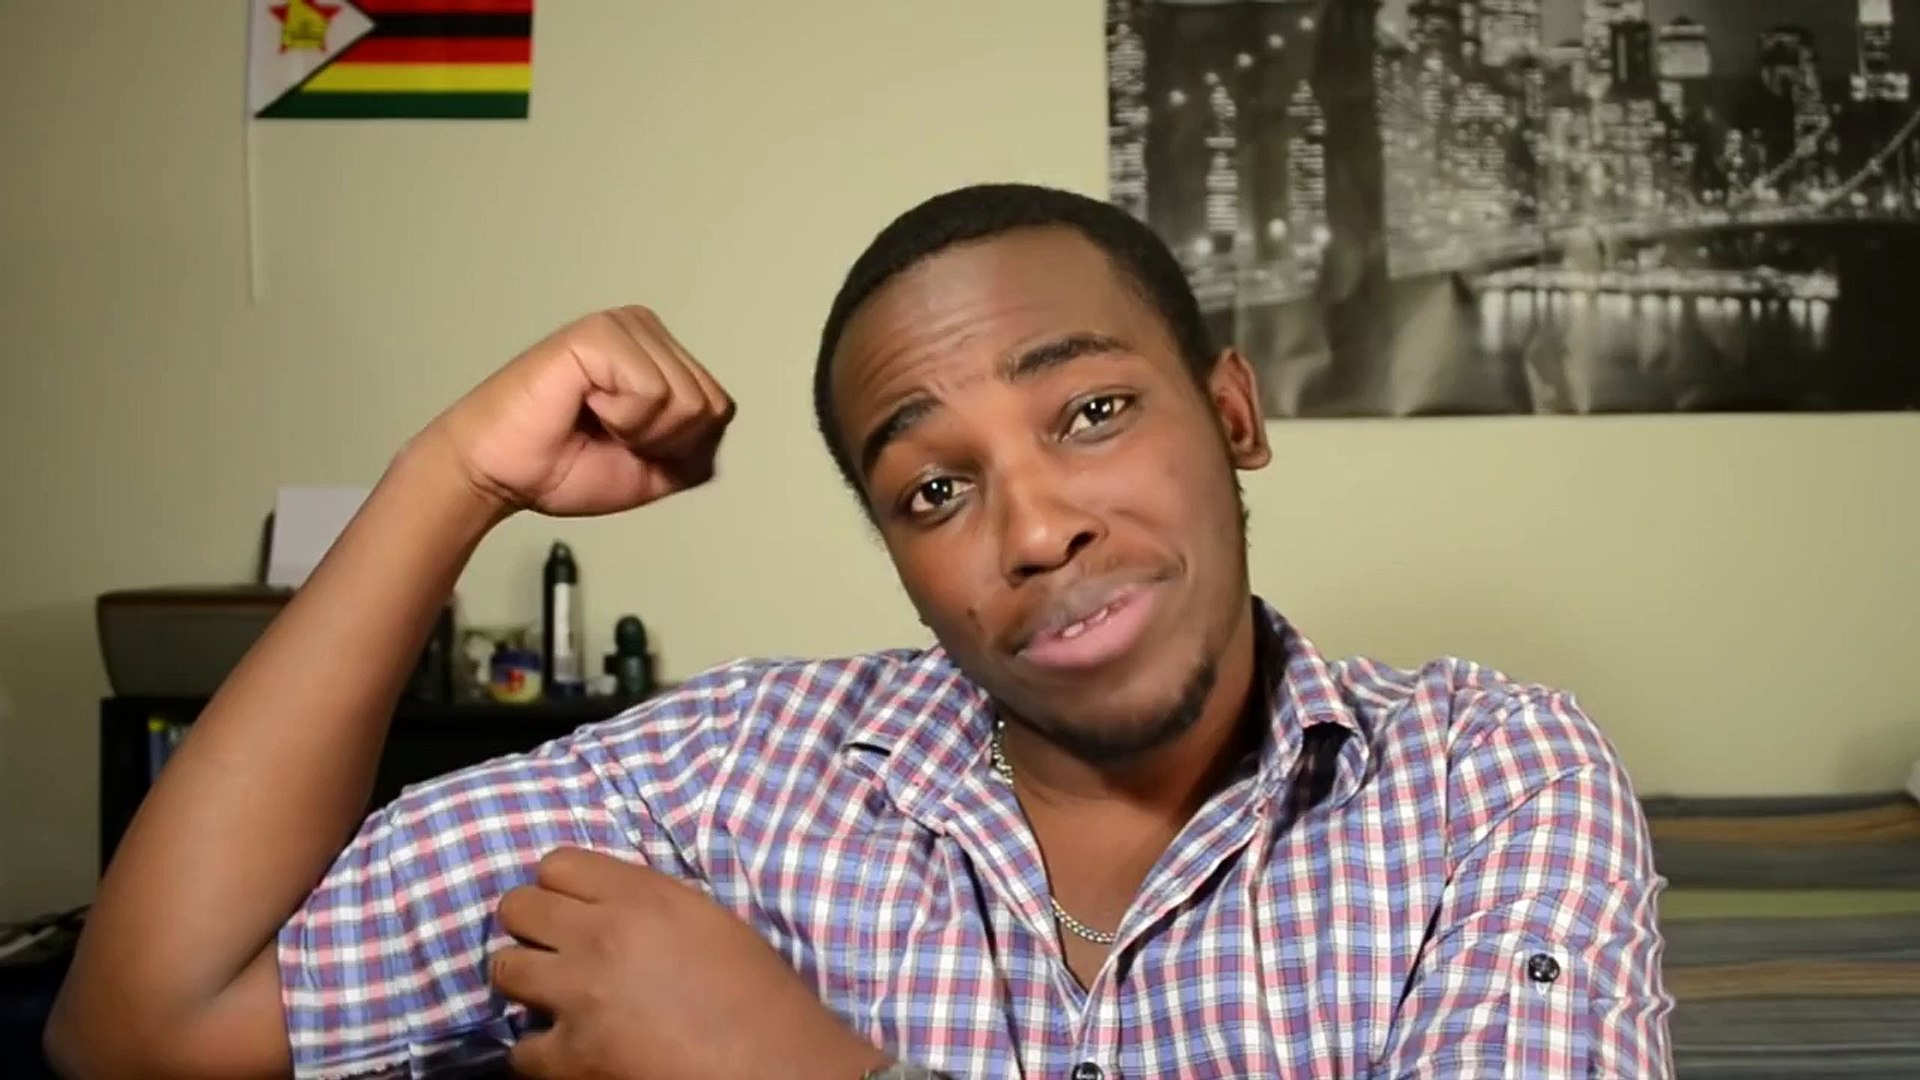 Top 10 Things People Say To Africans